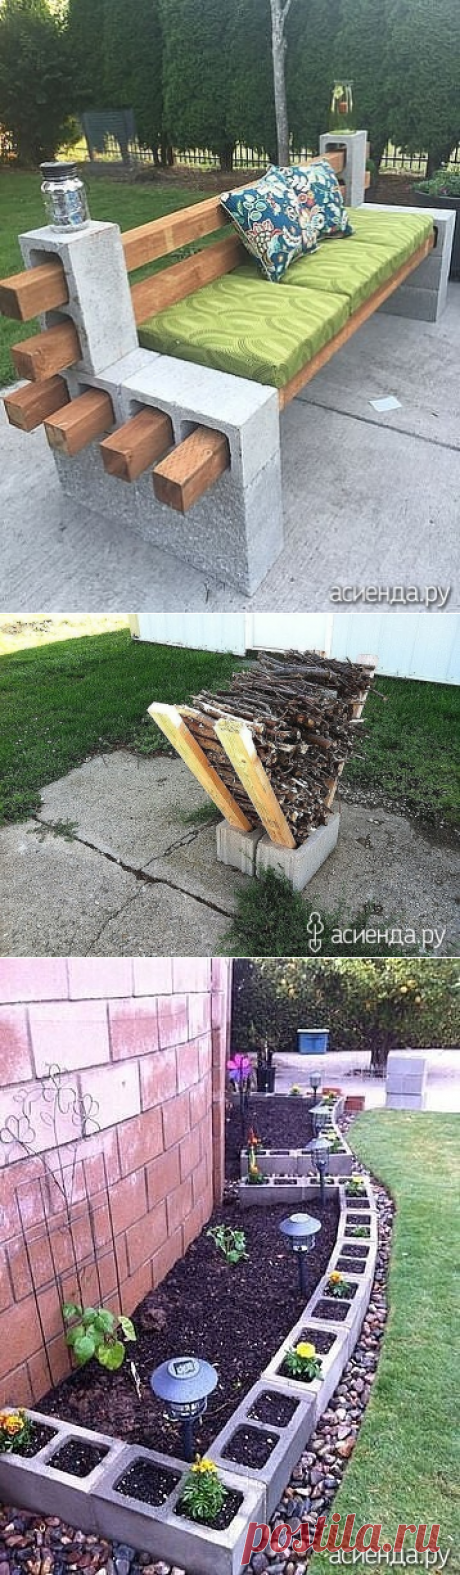 USE of CONCRETE BLOCKS AT the DACHA: Arrangement group and decoration of the seasonal dacha